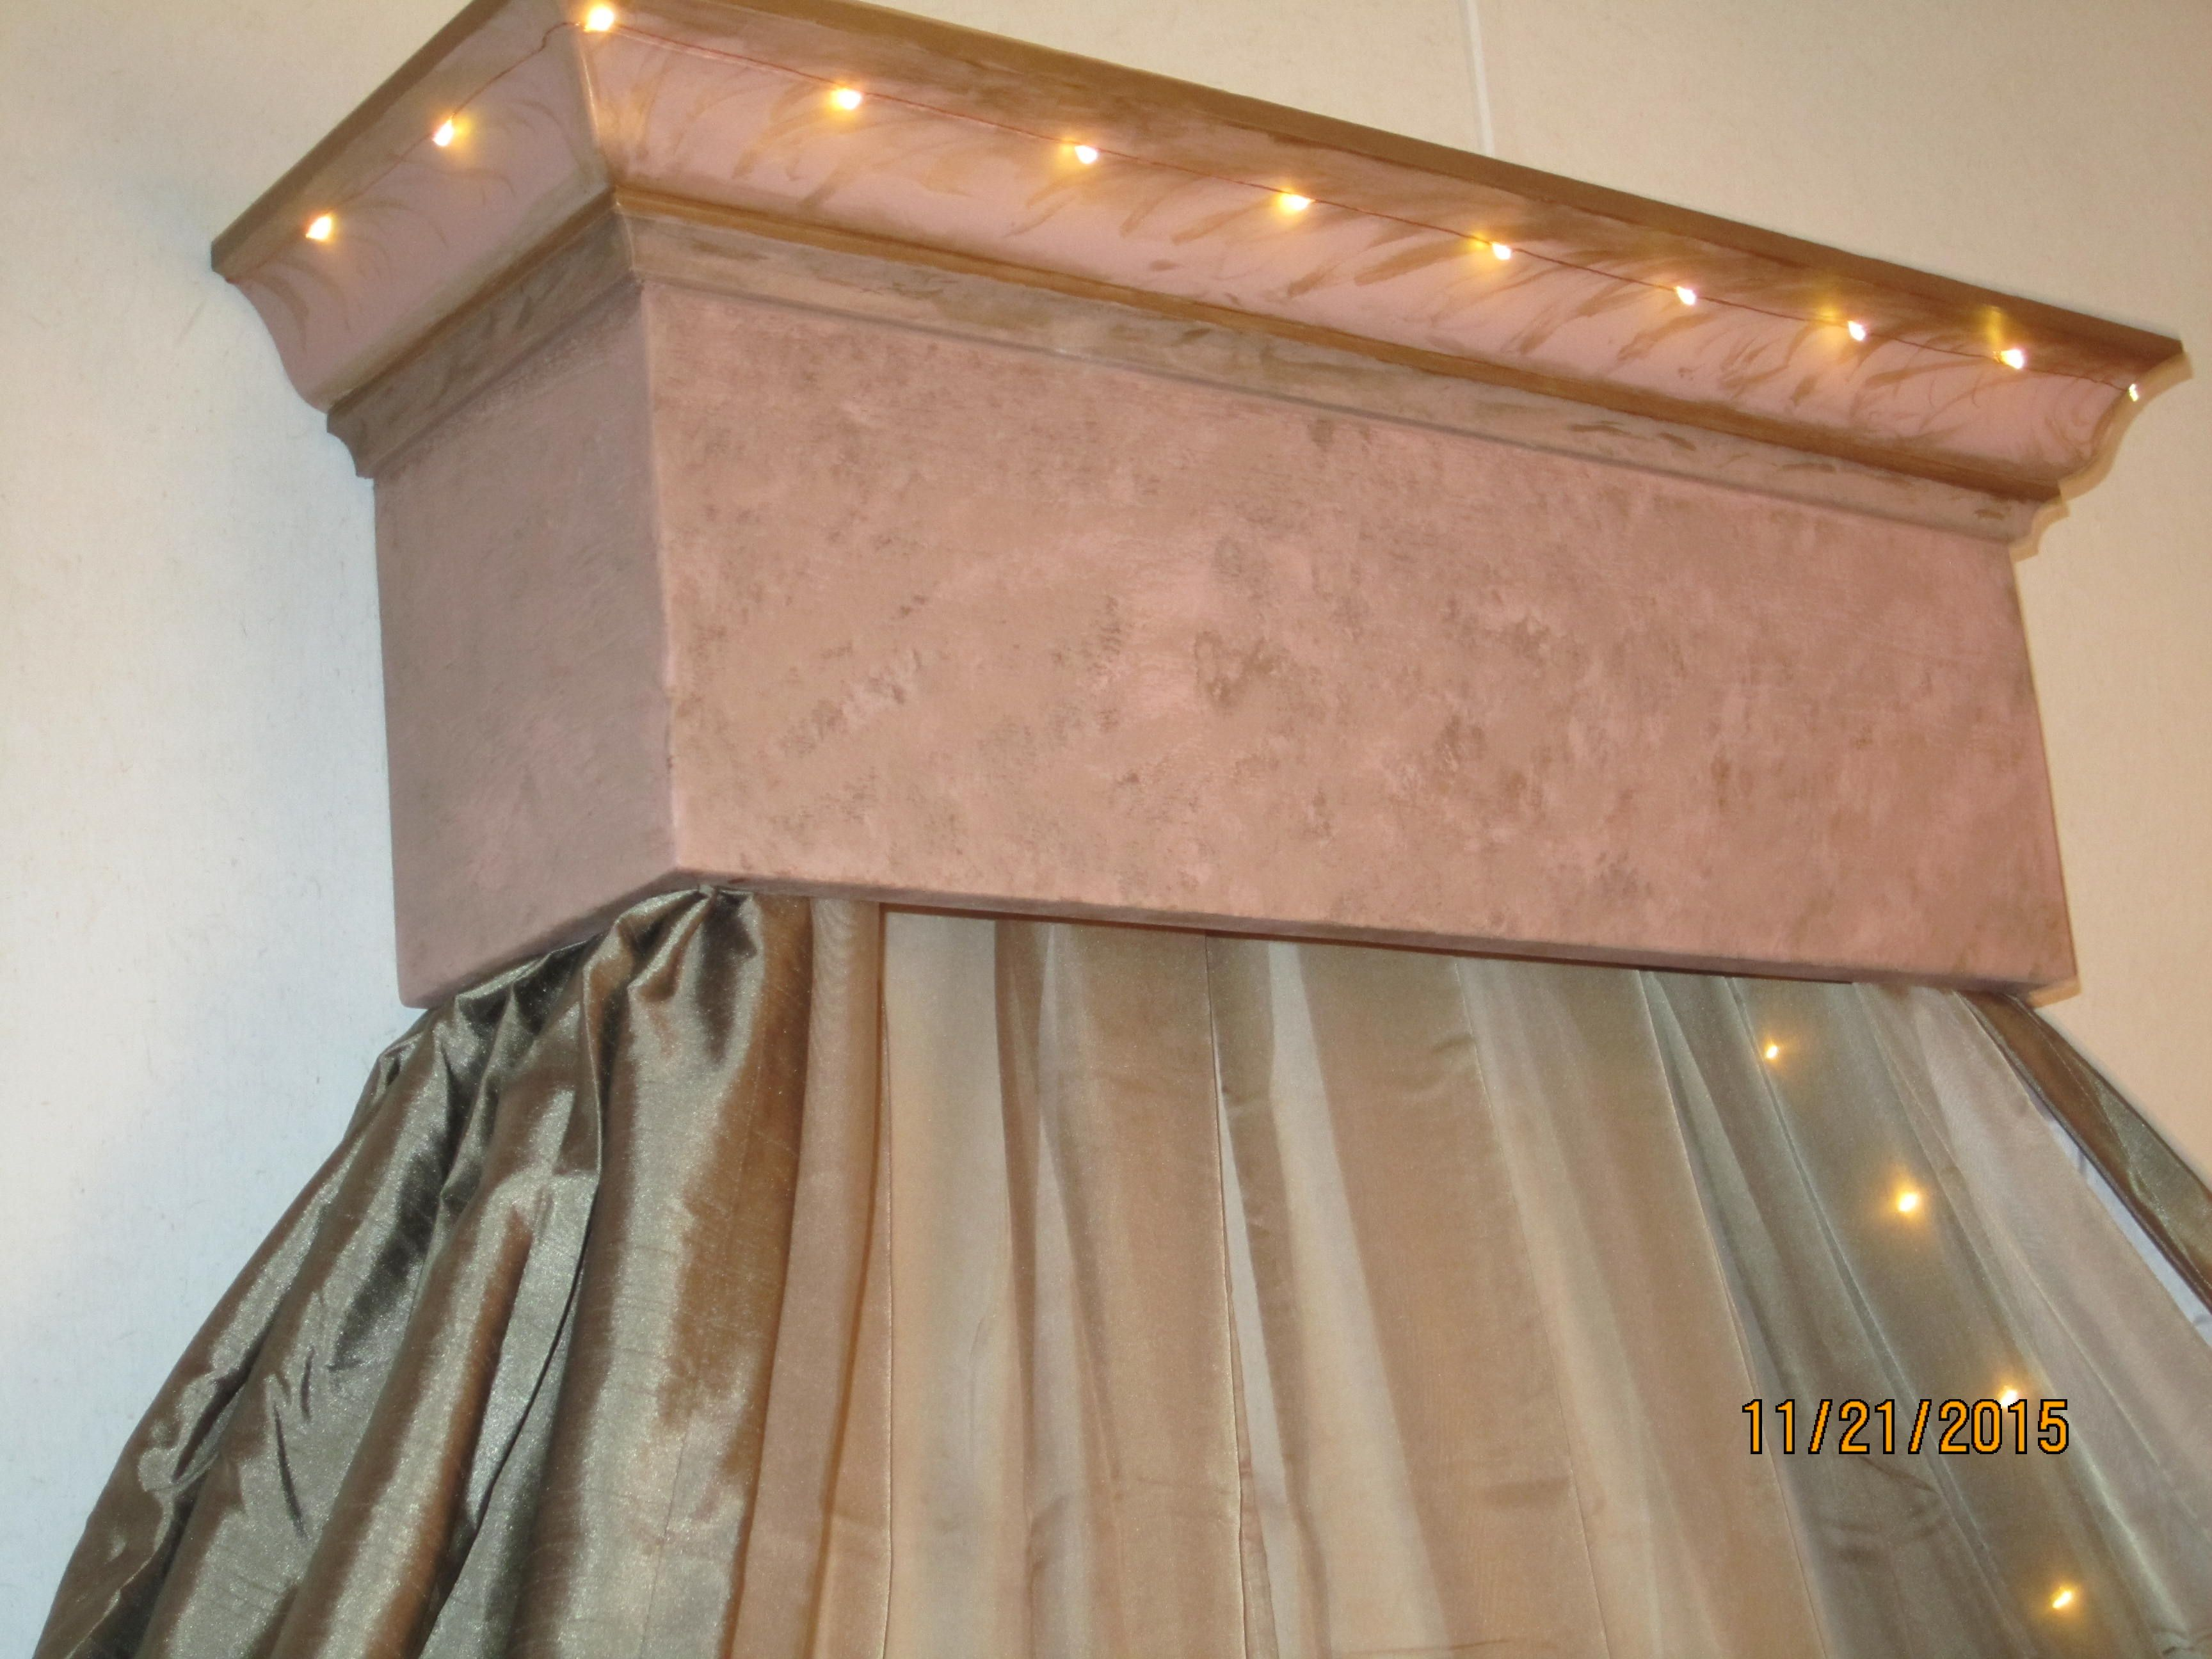 I went artistic on wood box with crown molding I designed and hubby made. Not quite marbling, but a blended wood rose and teak glazed over, with brush strokes at the top. Strung LED remote dimmer or flashing lights that extend down both sides inside the bronze drapes. The taupe sheers - 2.00 on Amazon.